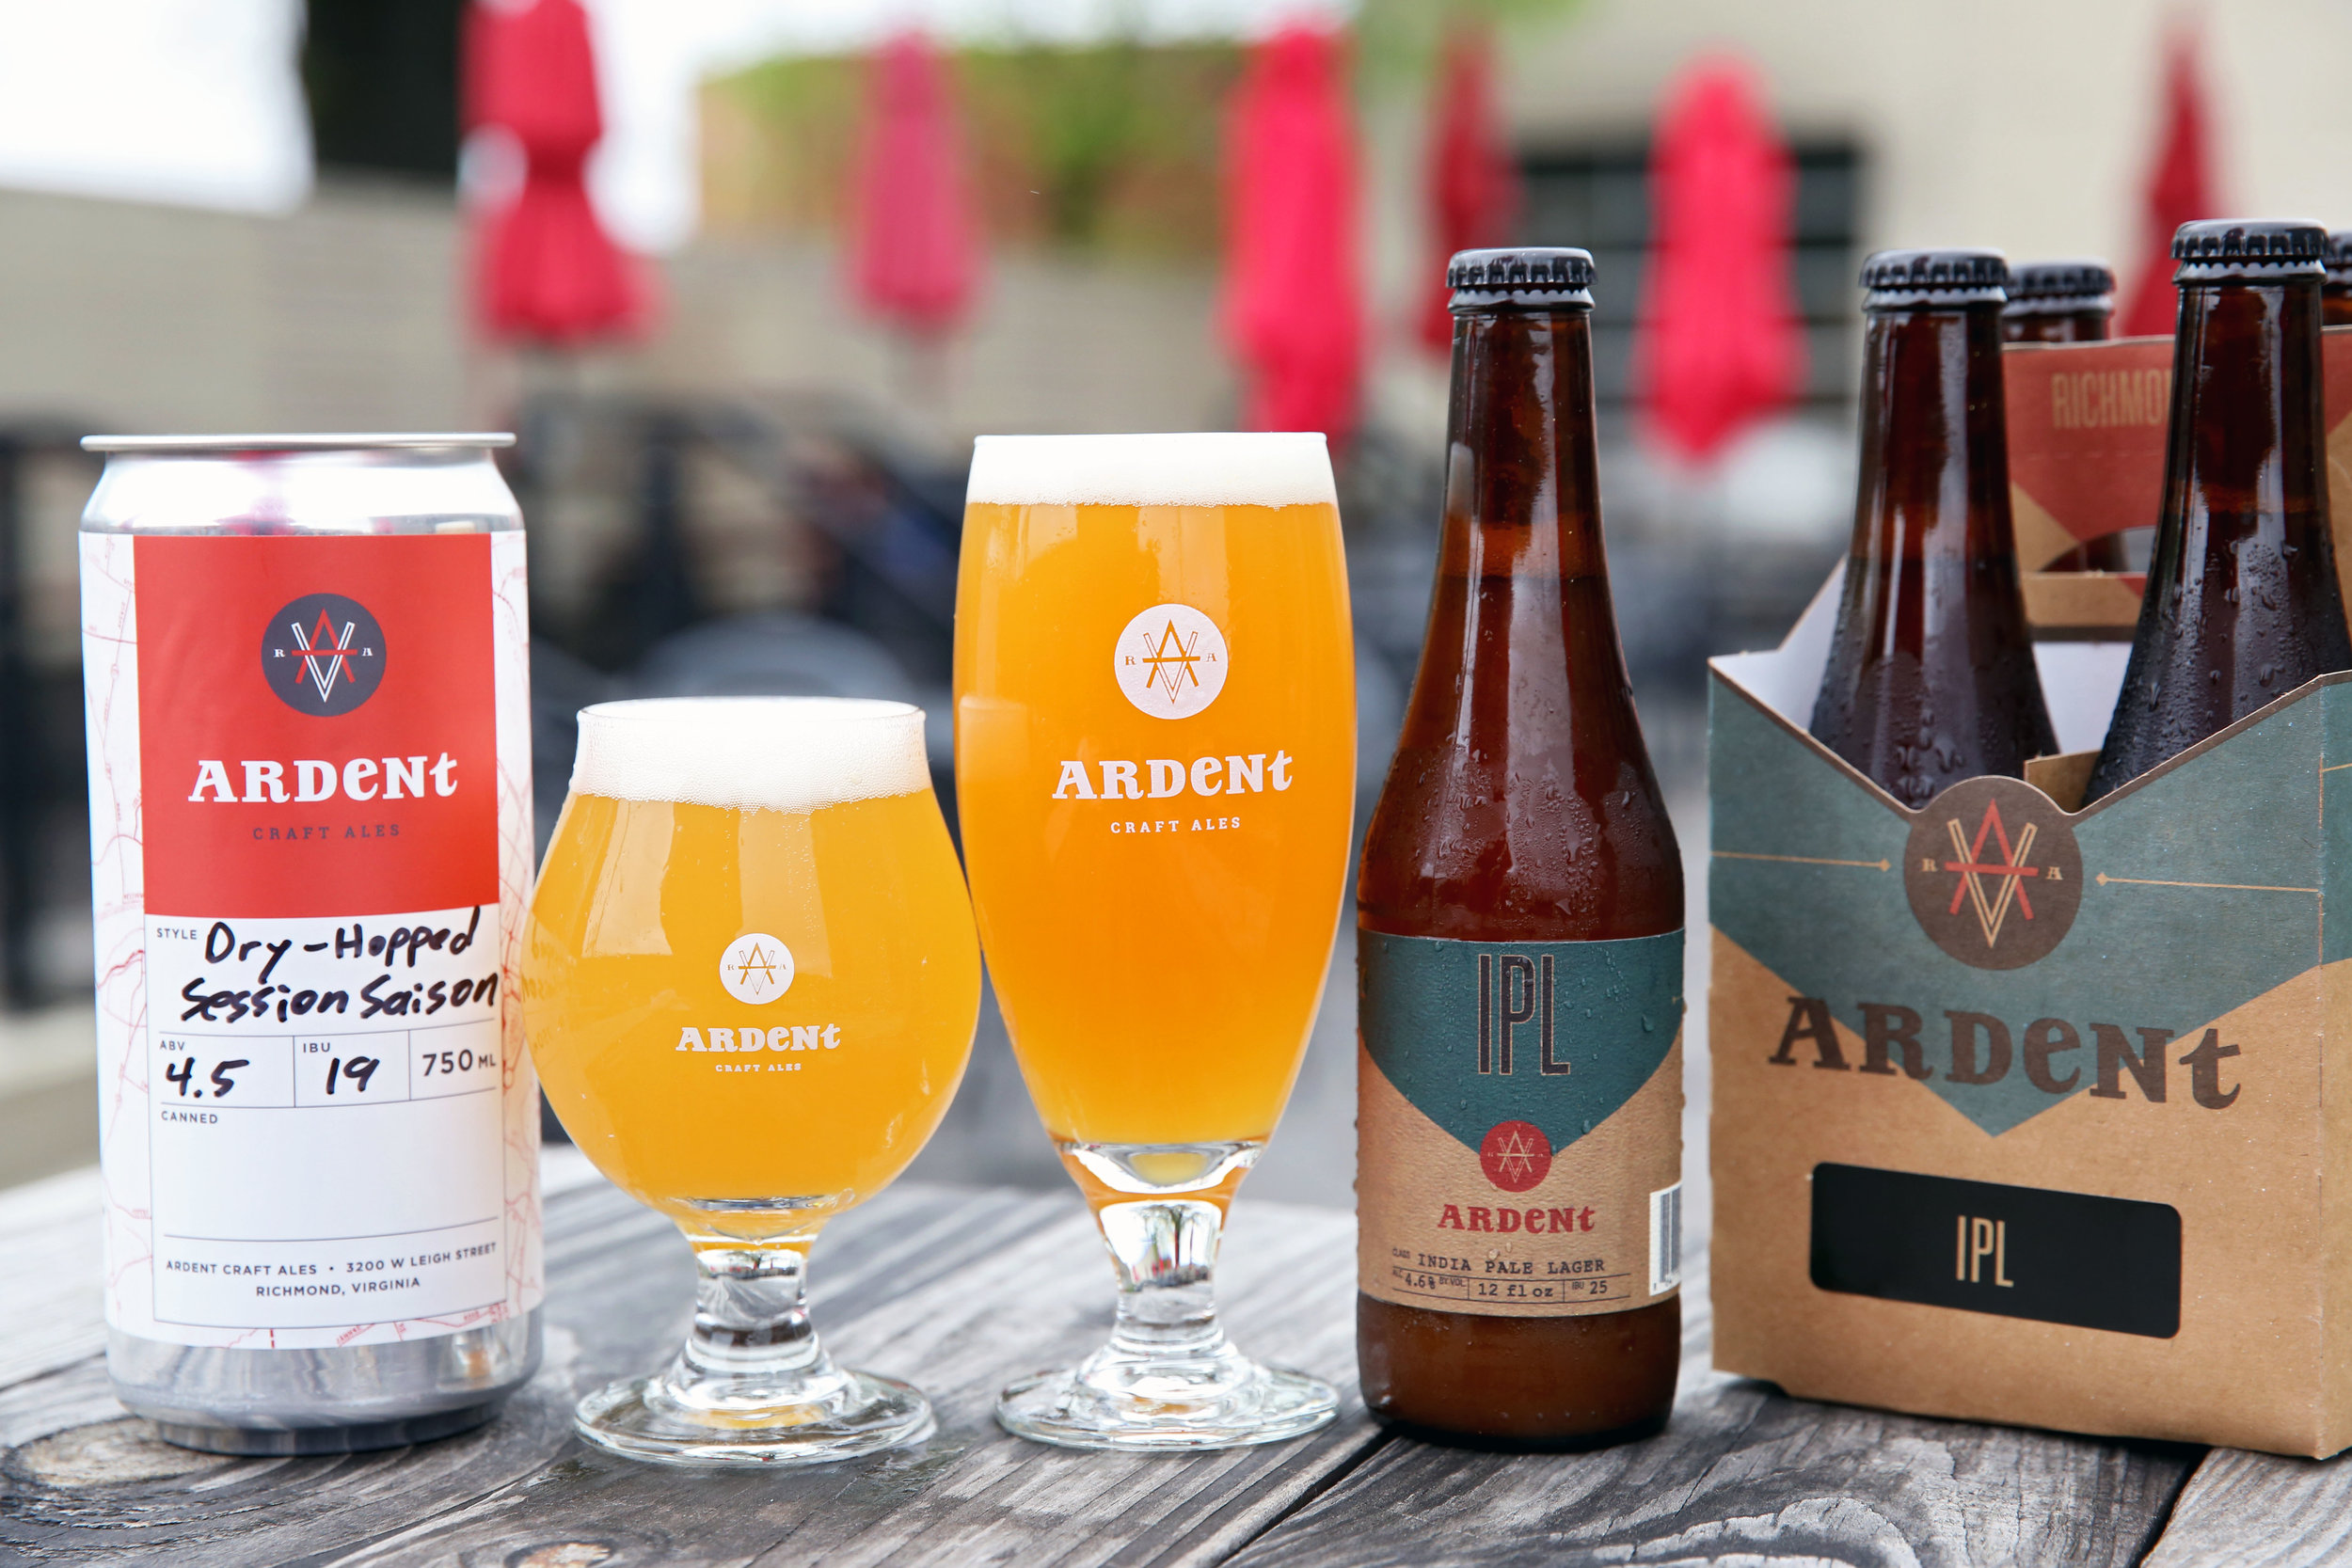 IPL & Dry-Hopped Session Saison release + Fourth Anniversary Block ...